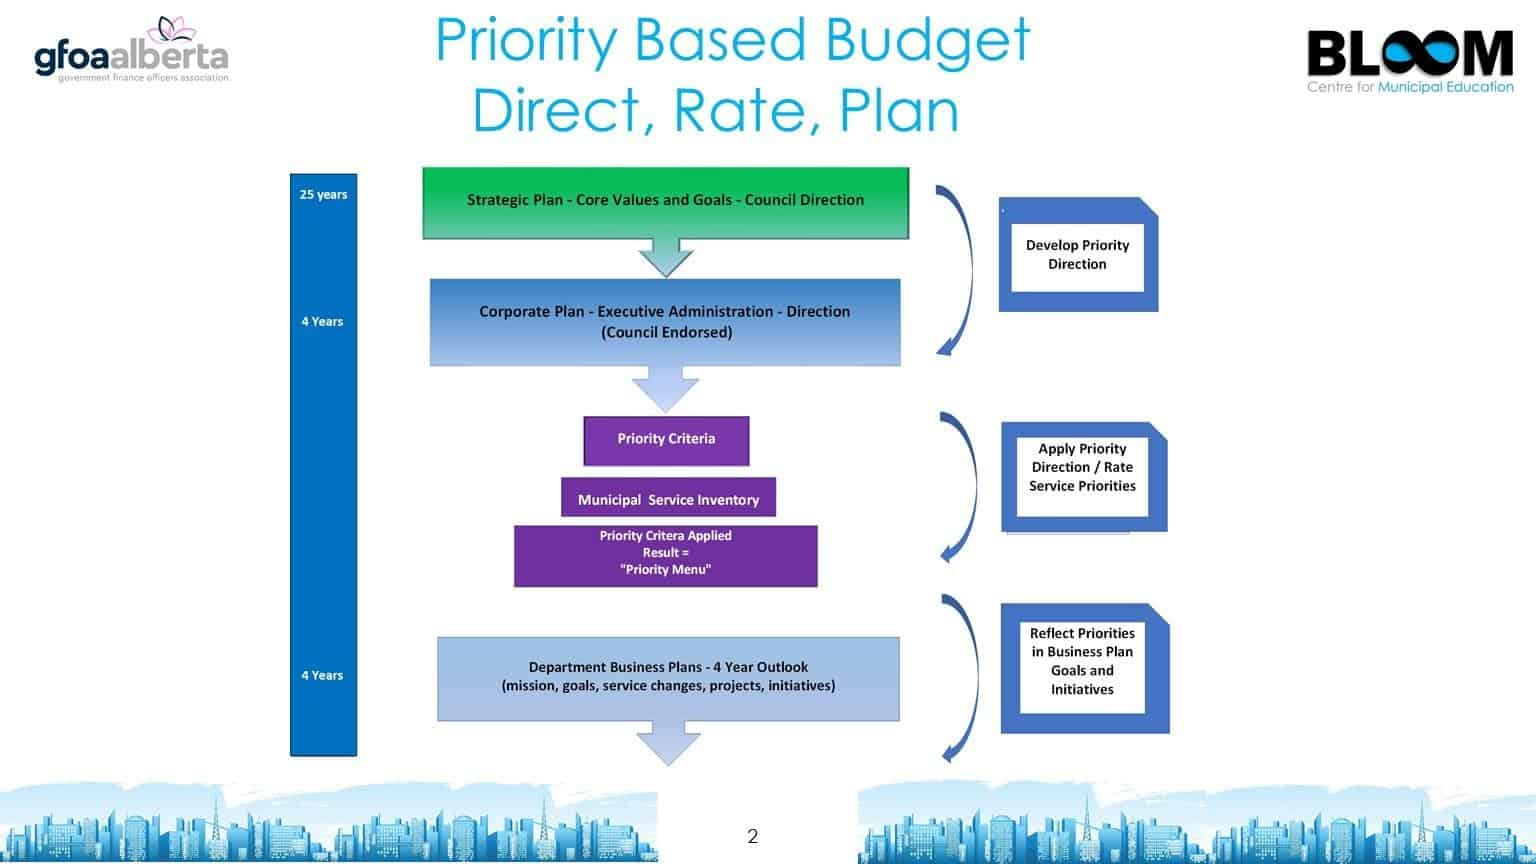 Priority based budget direct, rate, plan